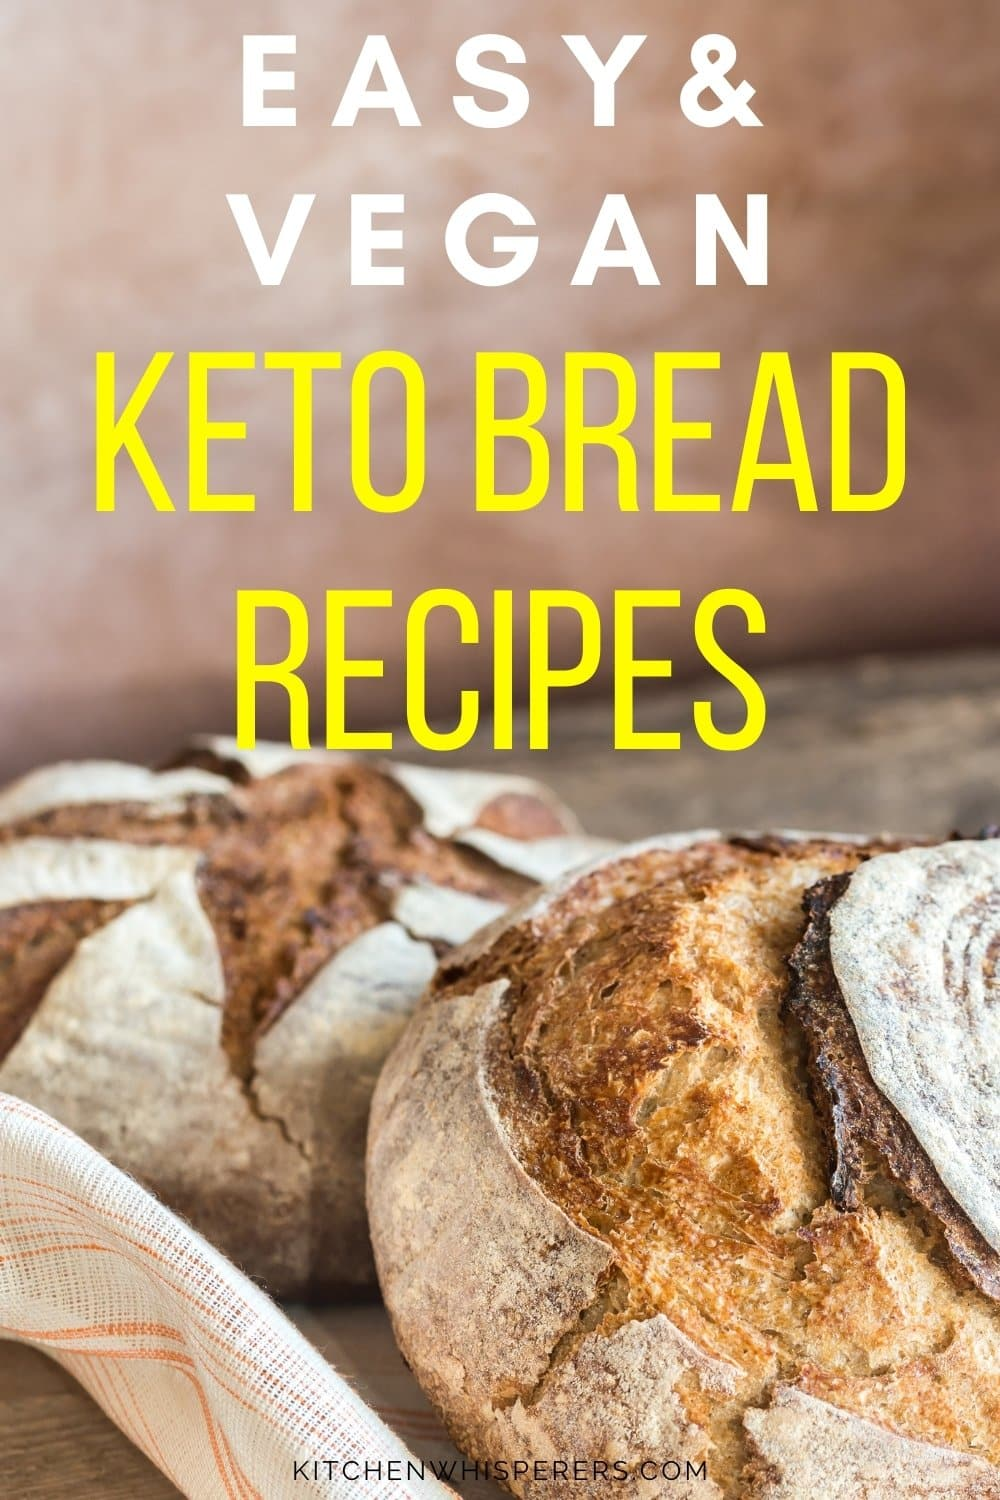 amazing healthy vegan keto bread recipes